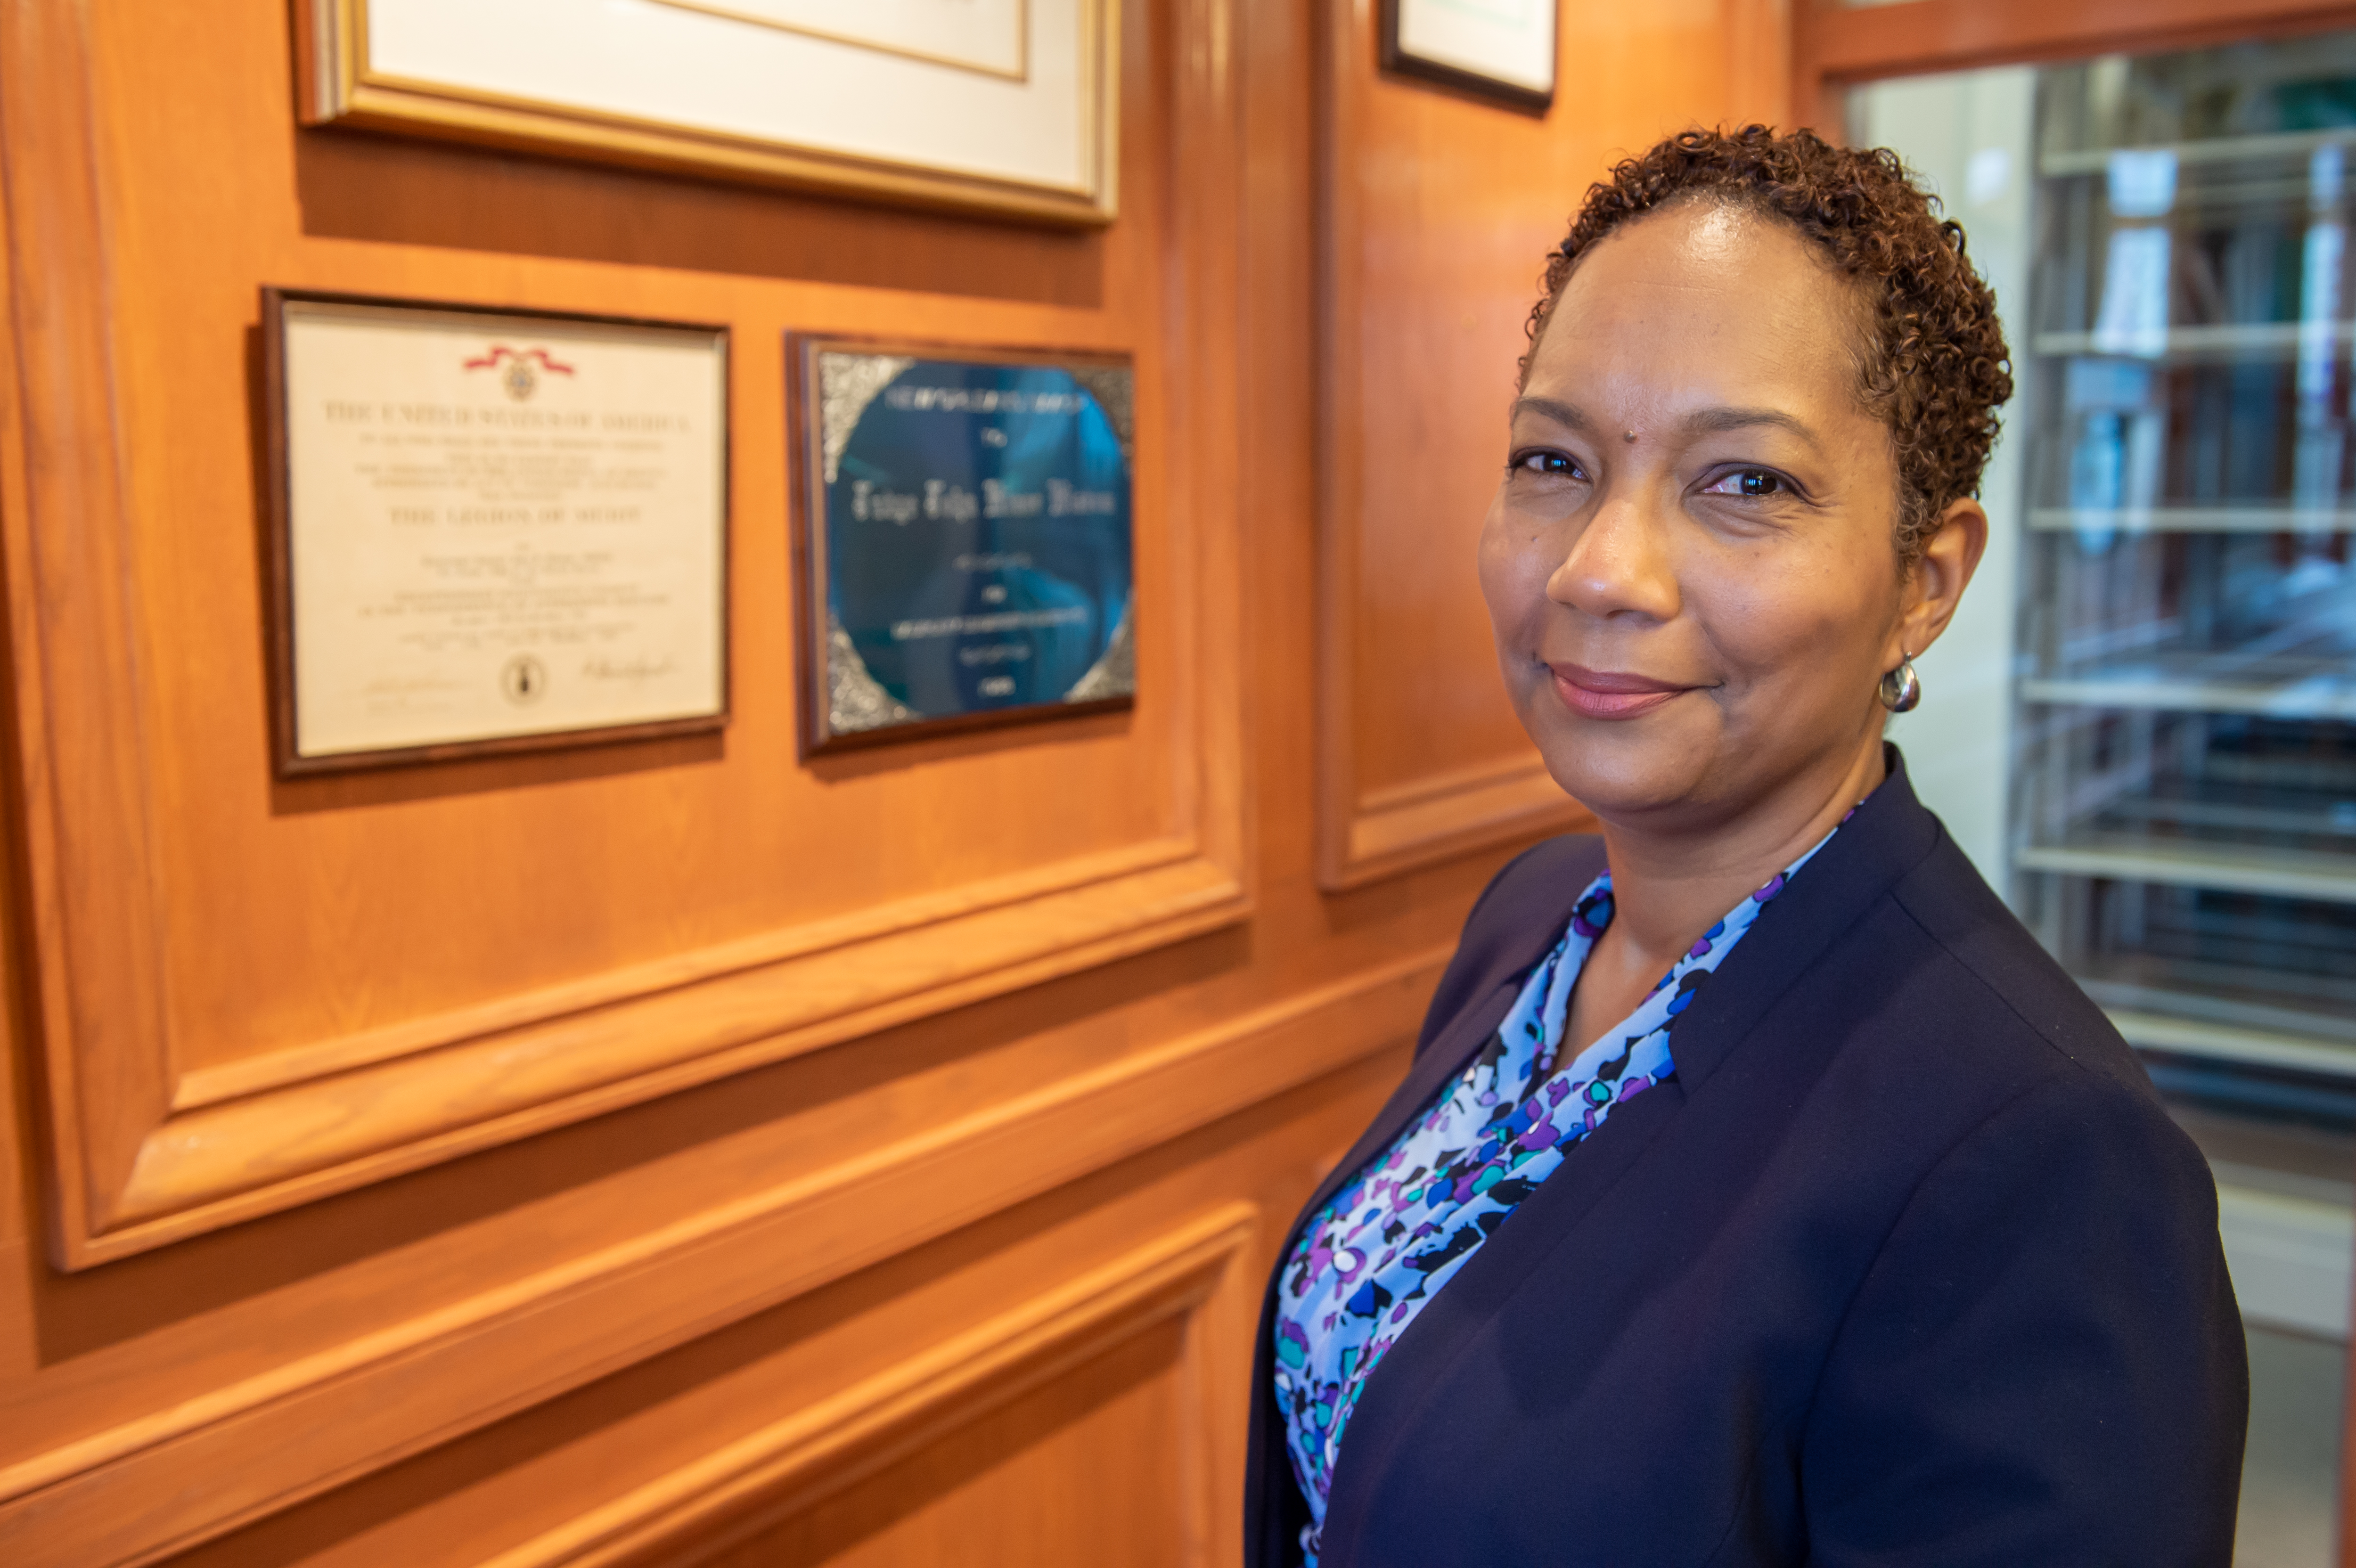 Tonya's appointment to Associate Dean